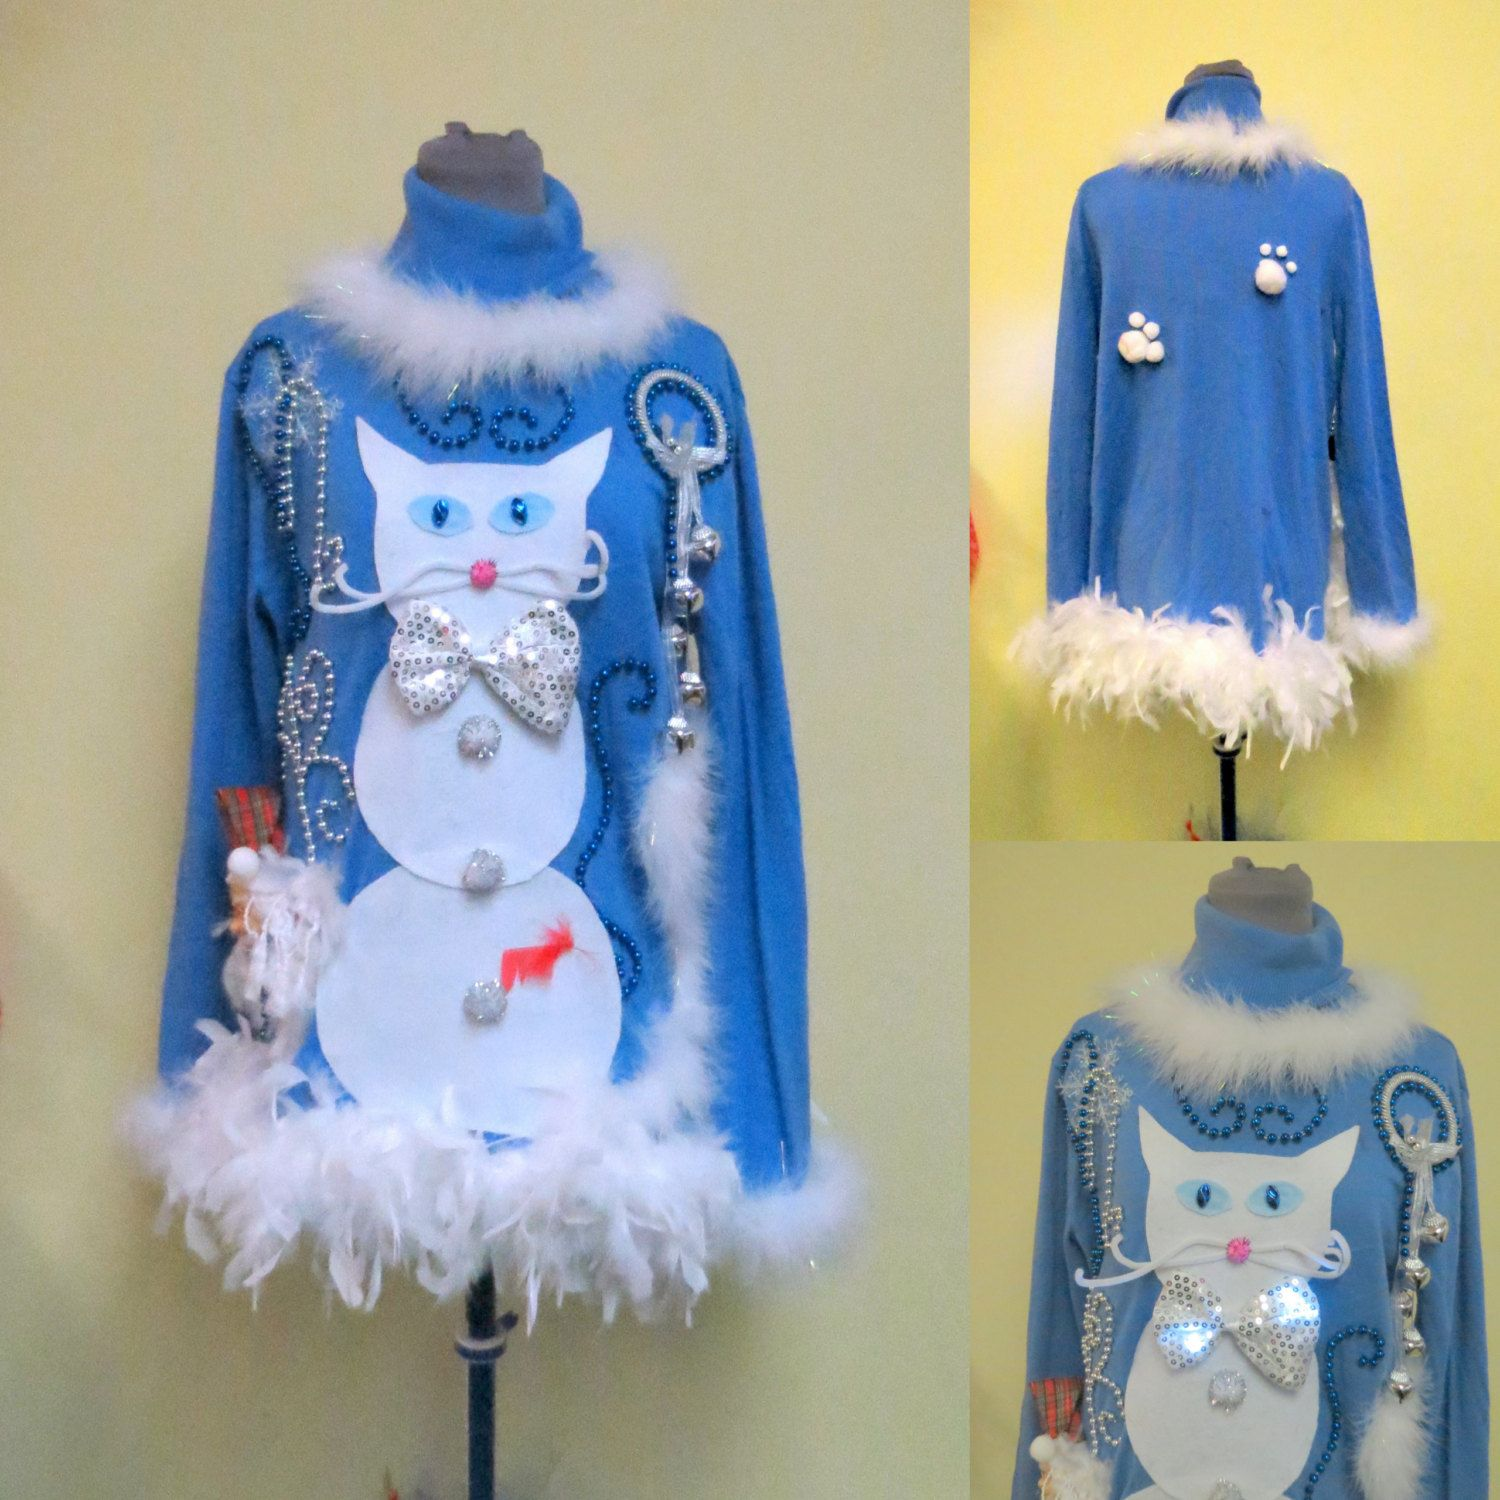 3-D Kitty Cat HILARIOUS Snowman Cat Tacky Ugly Christmas Sweater ...